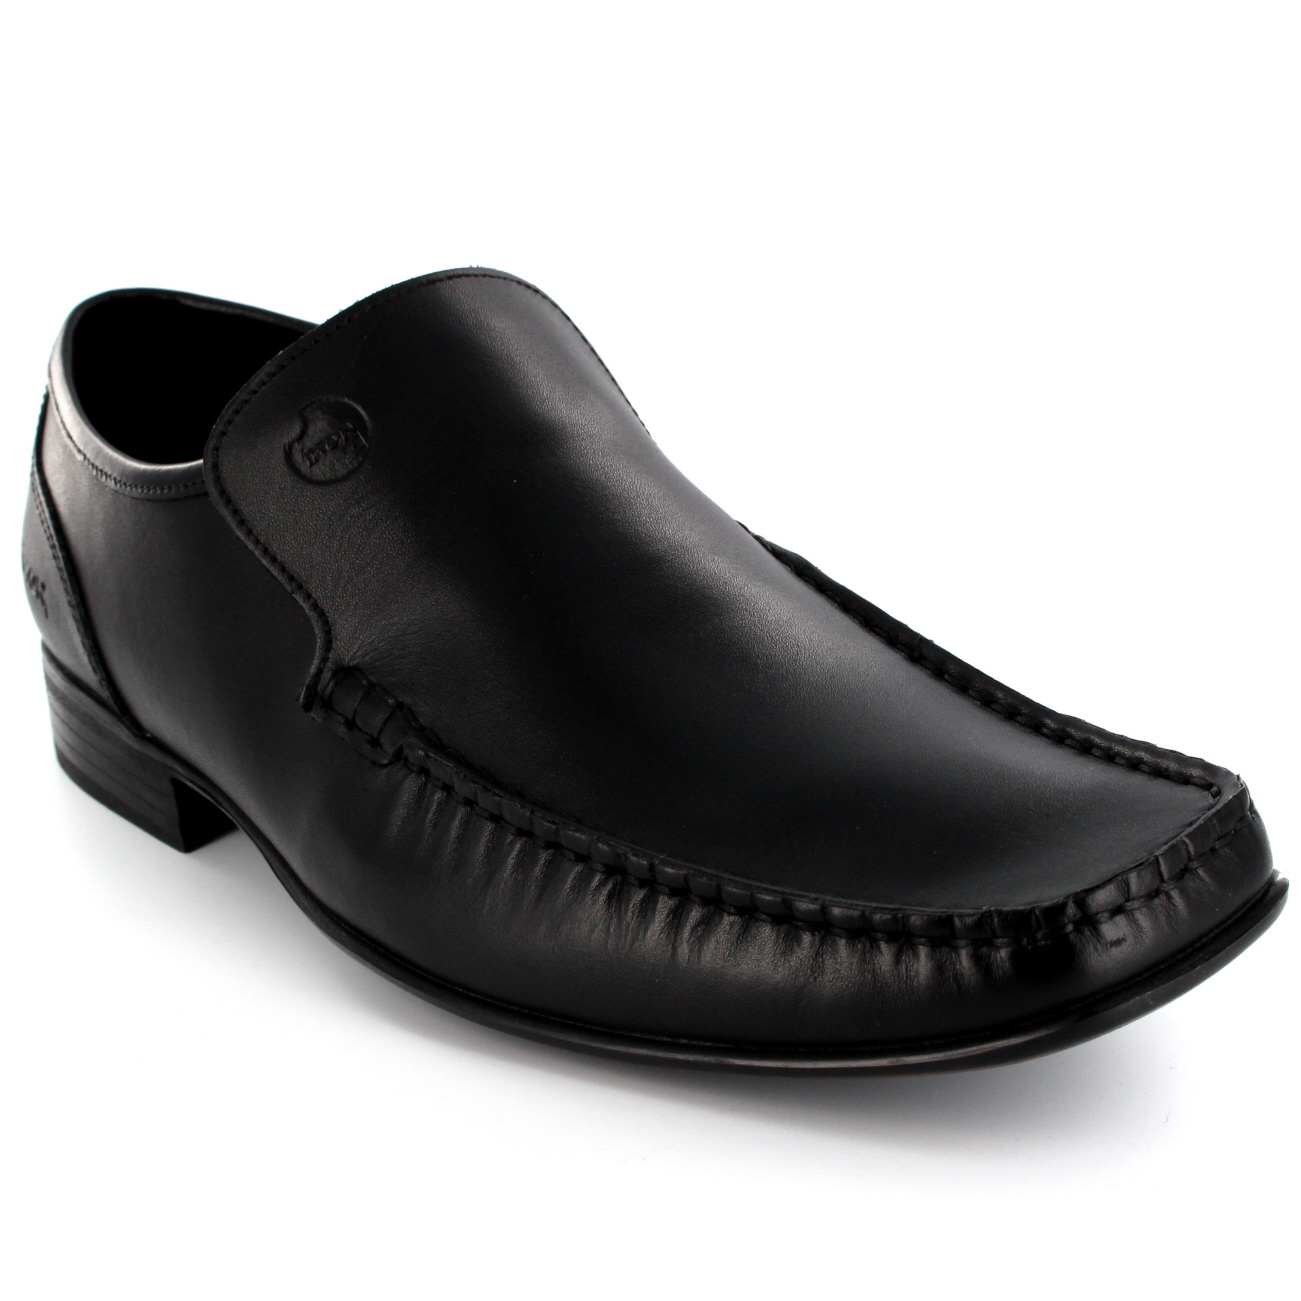 Ikon Morton Loafer Shoes